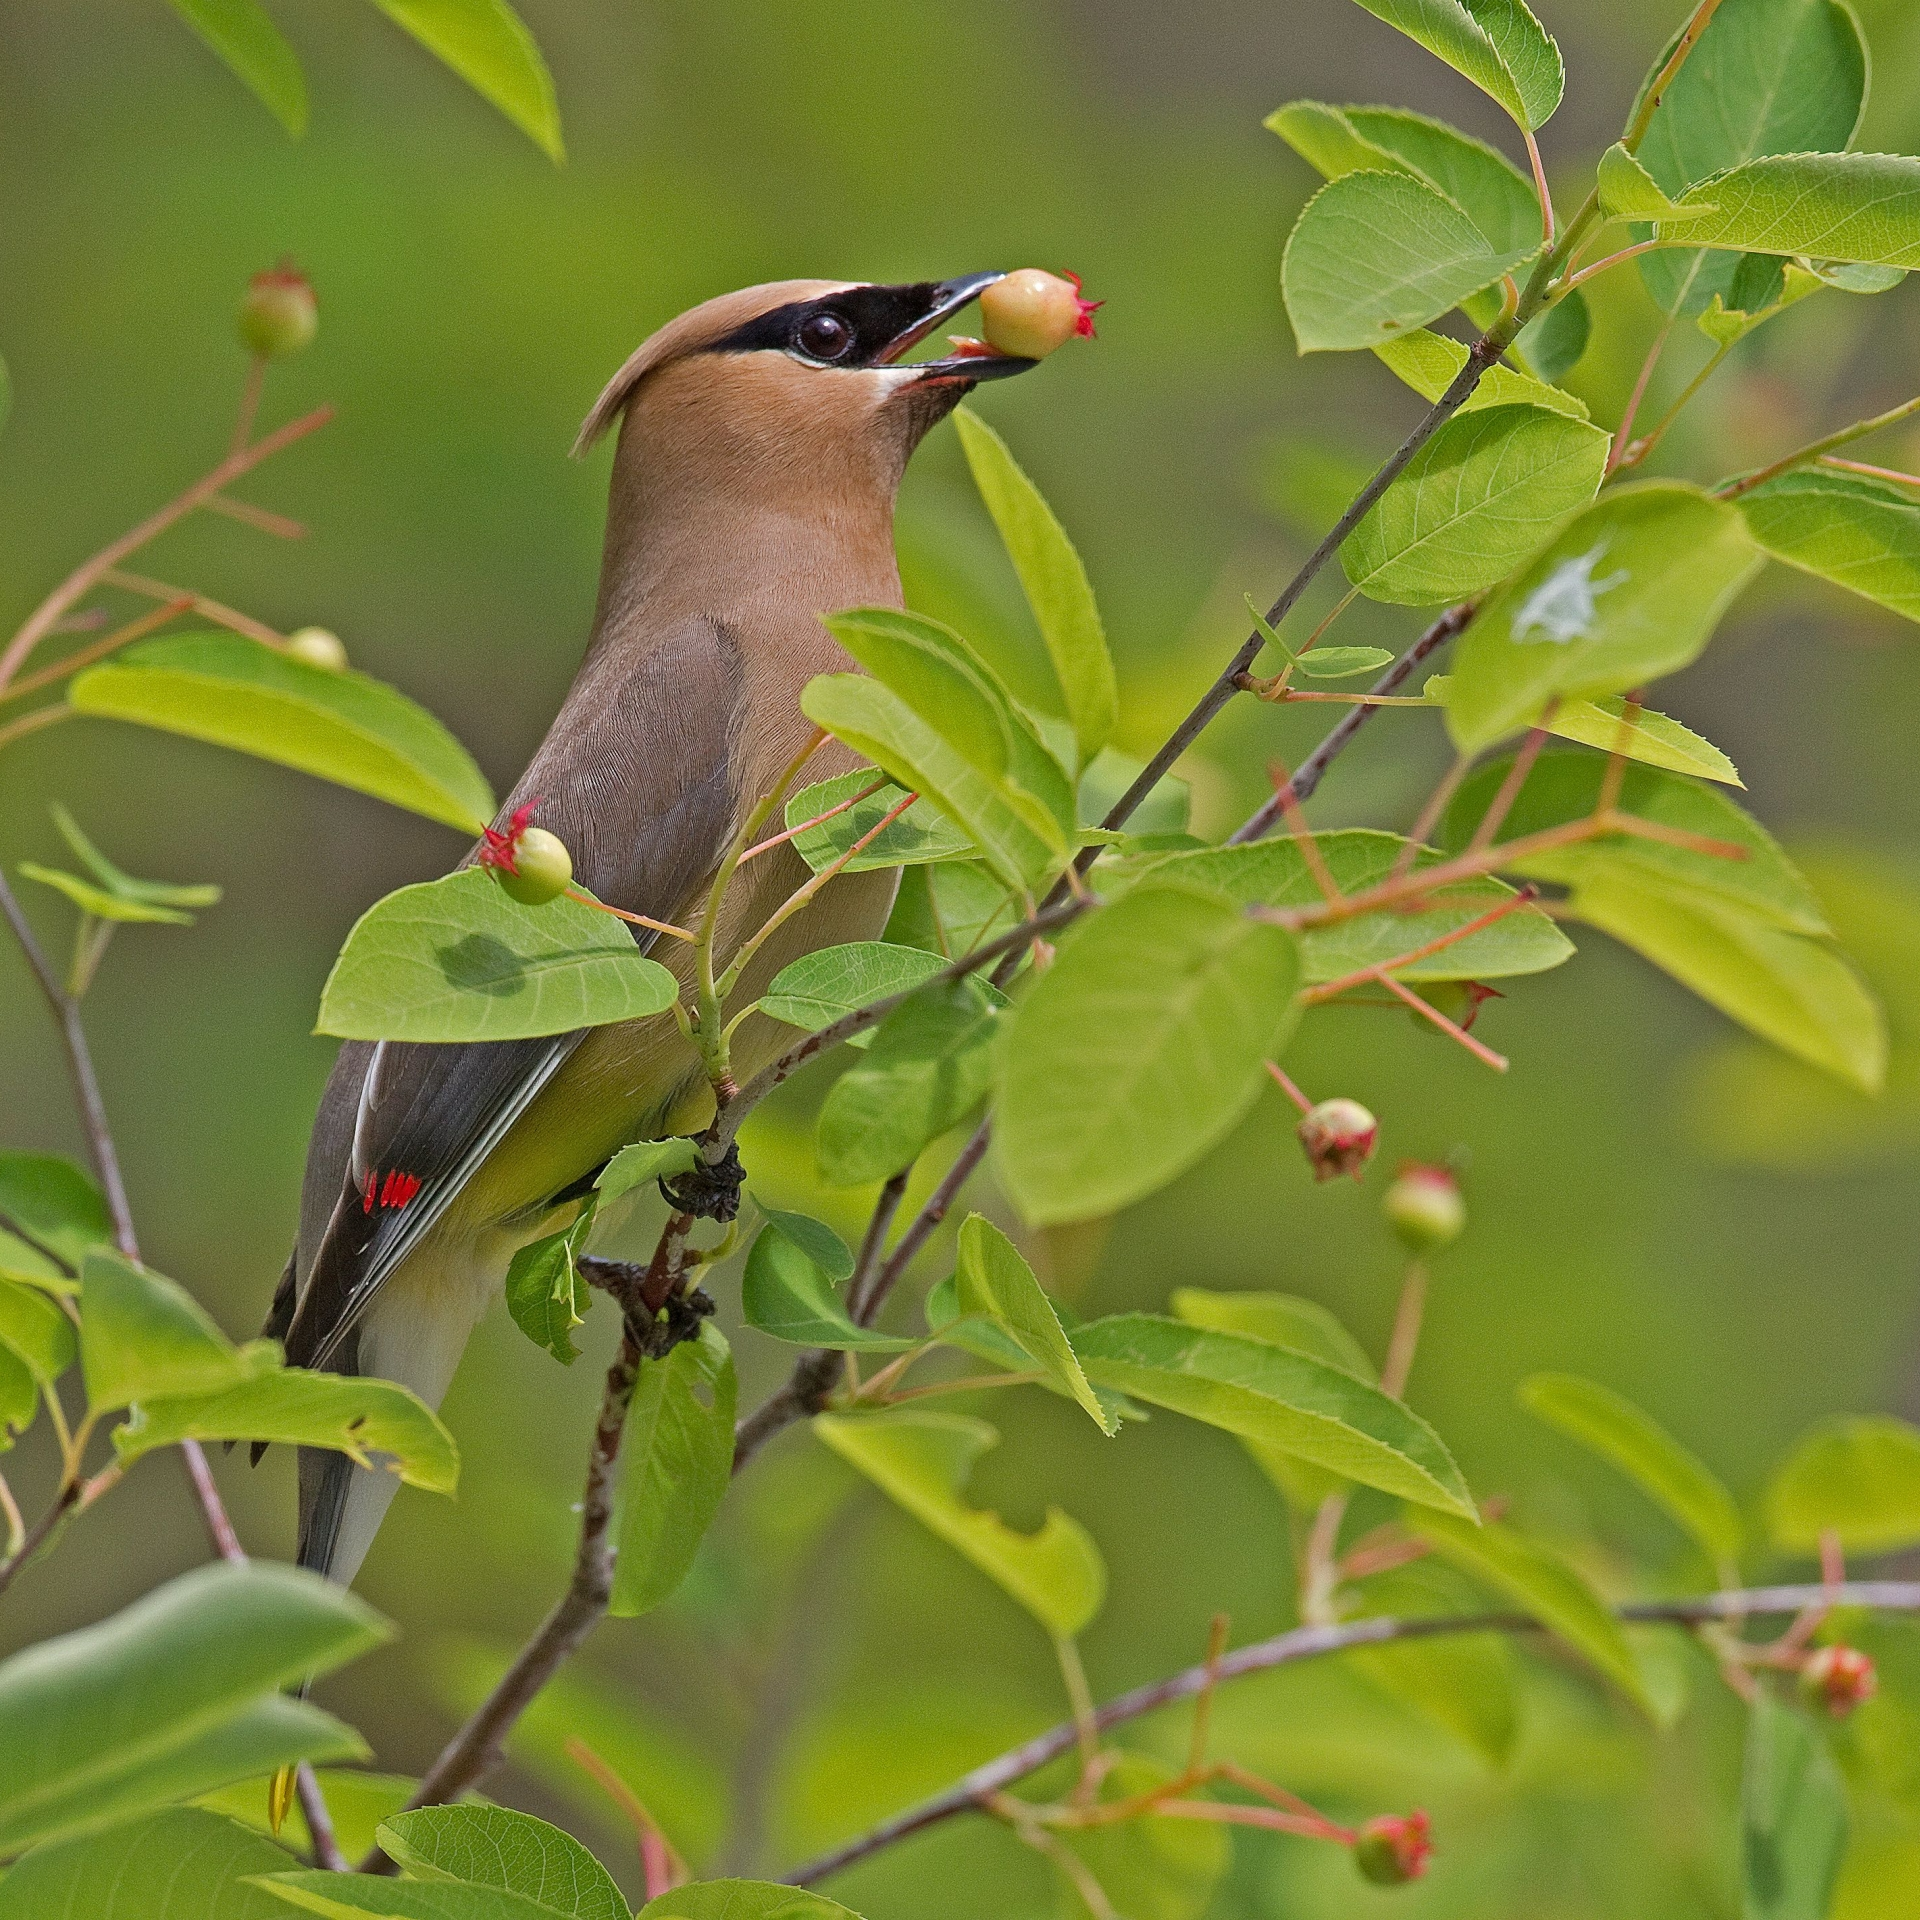 Cedar Waxwing eathing an Amelanchier berry.